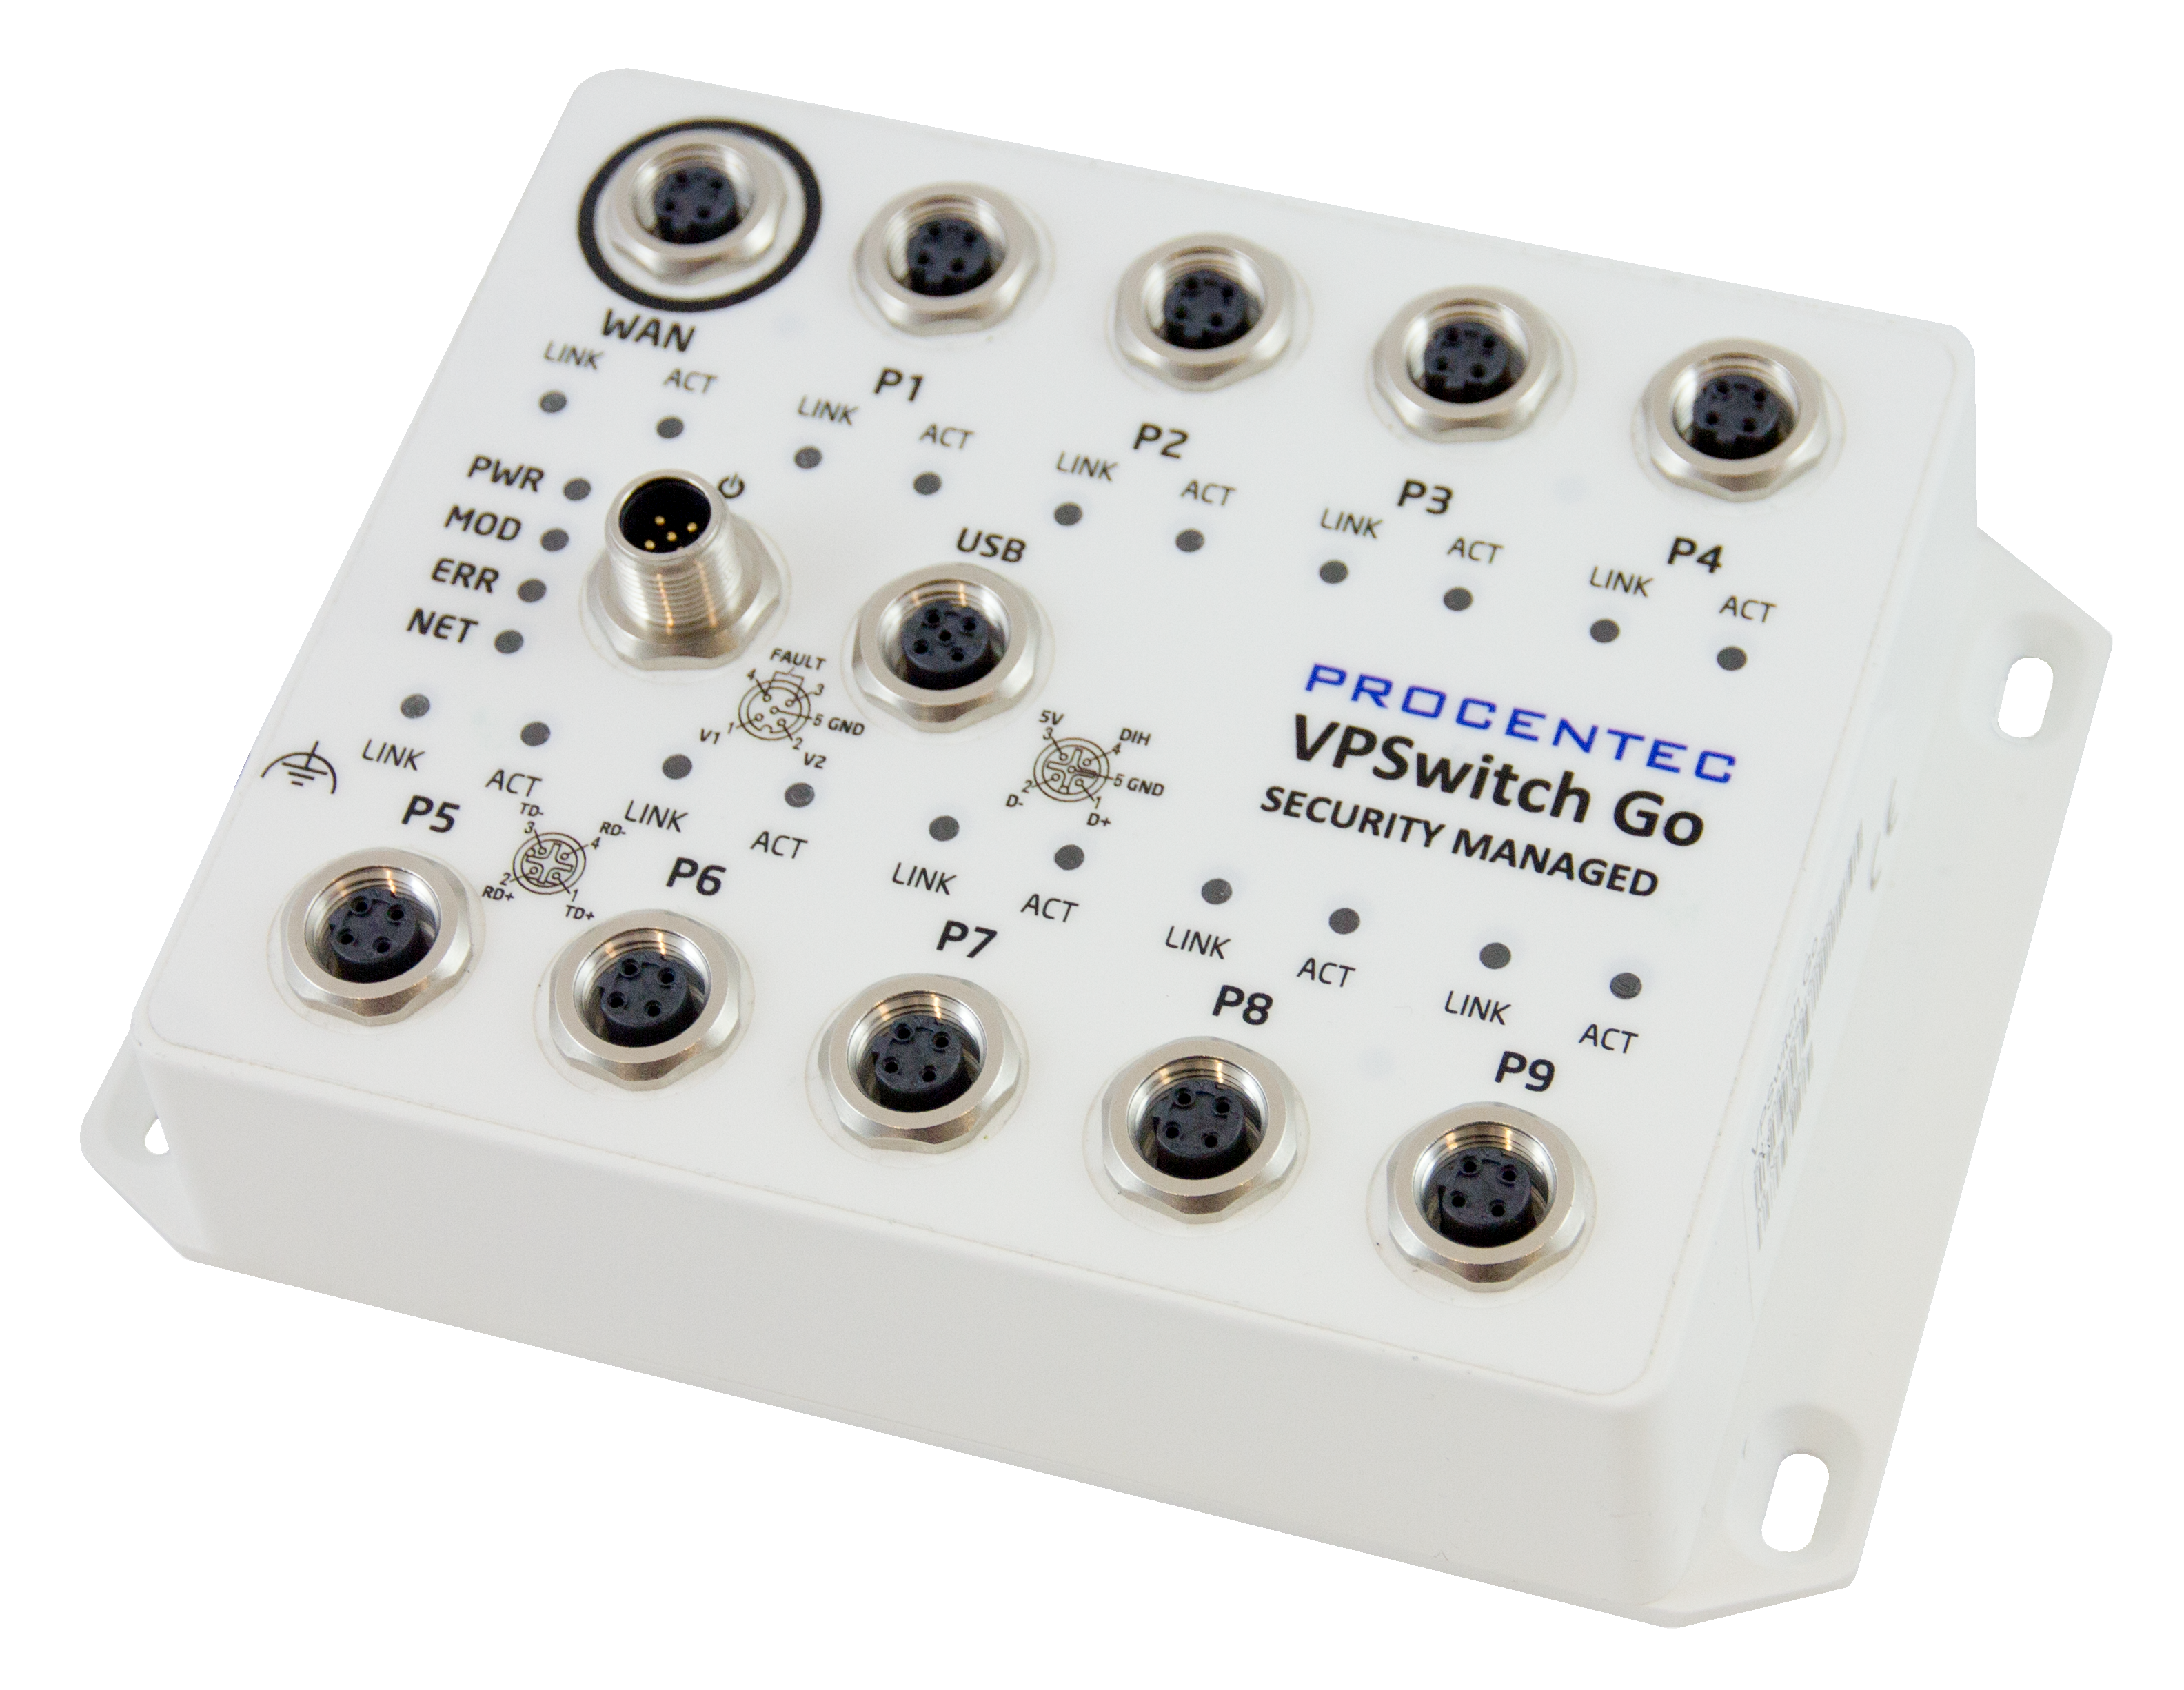 VPSwitch Go Security Managed 10TX-M12 - visual 1